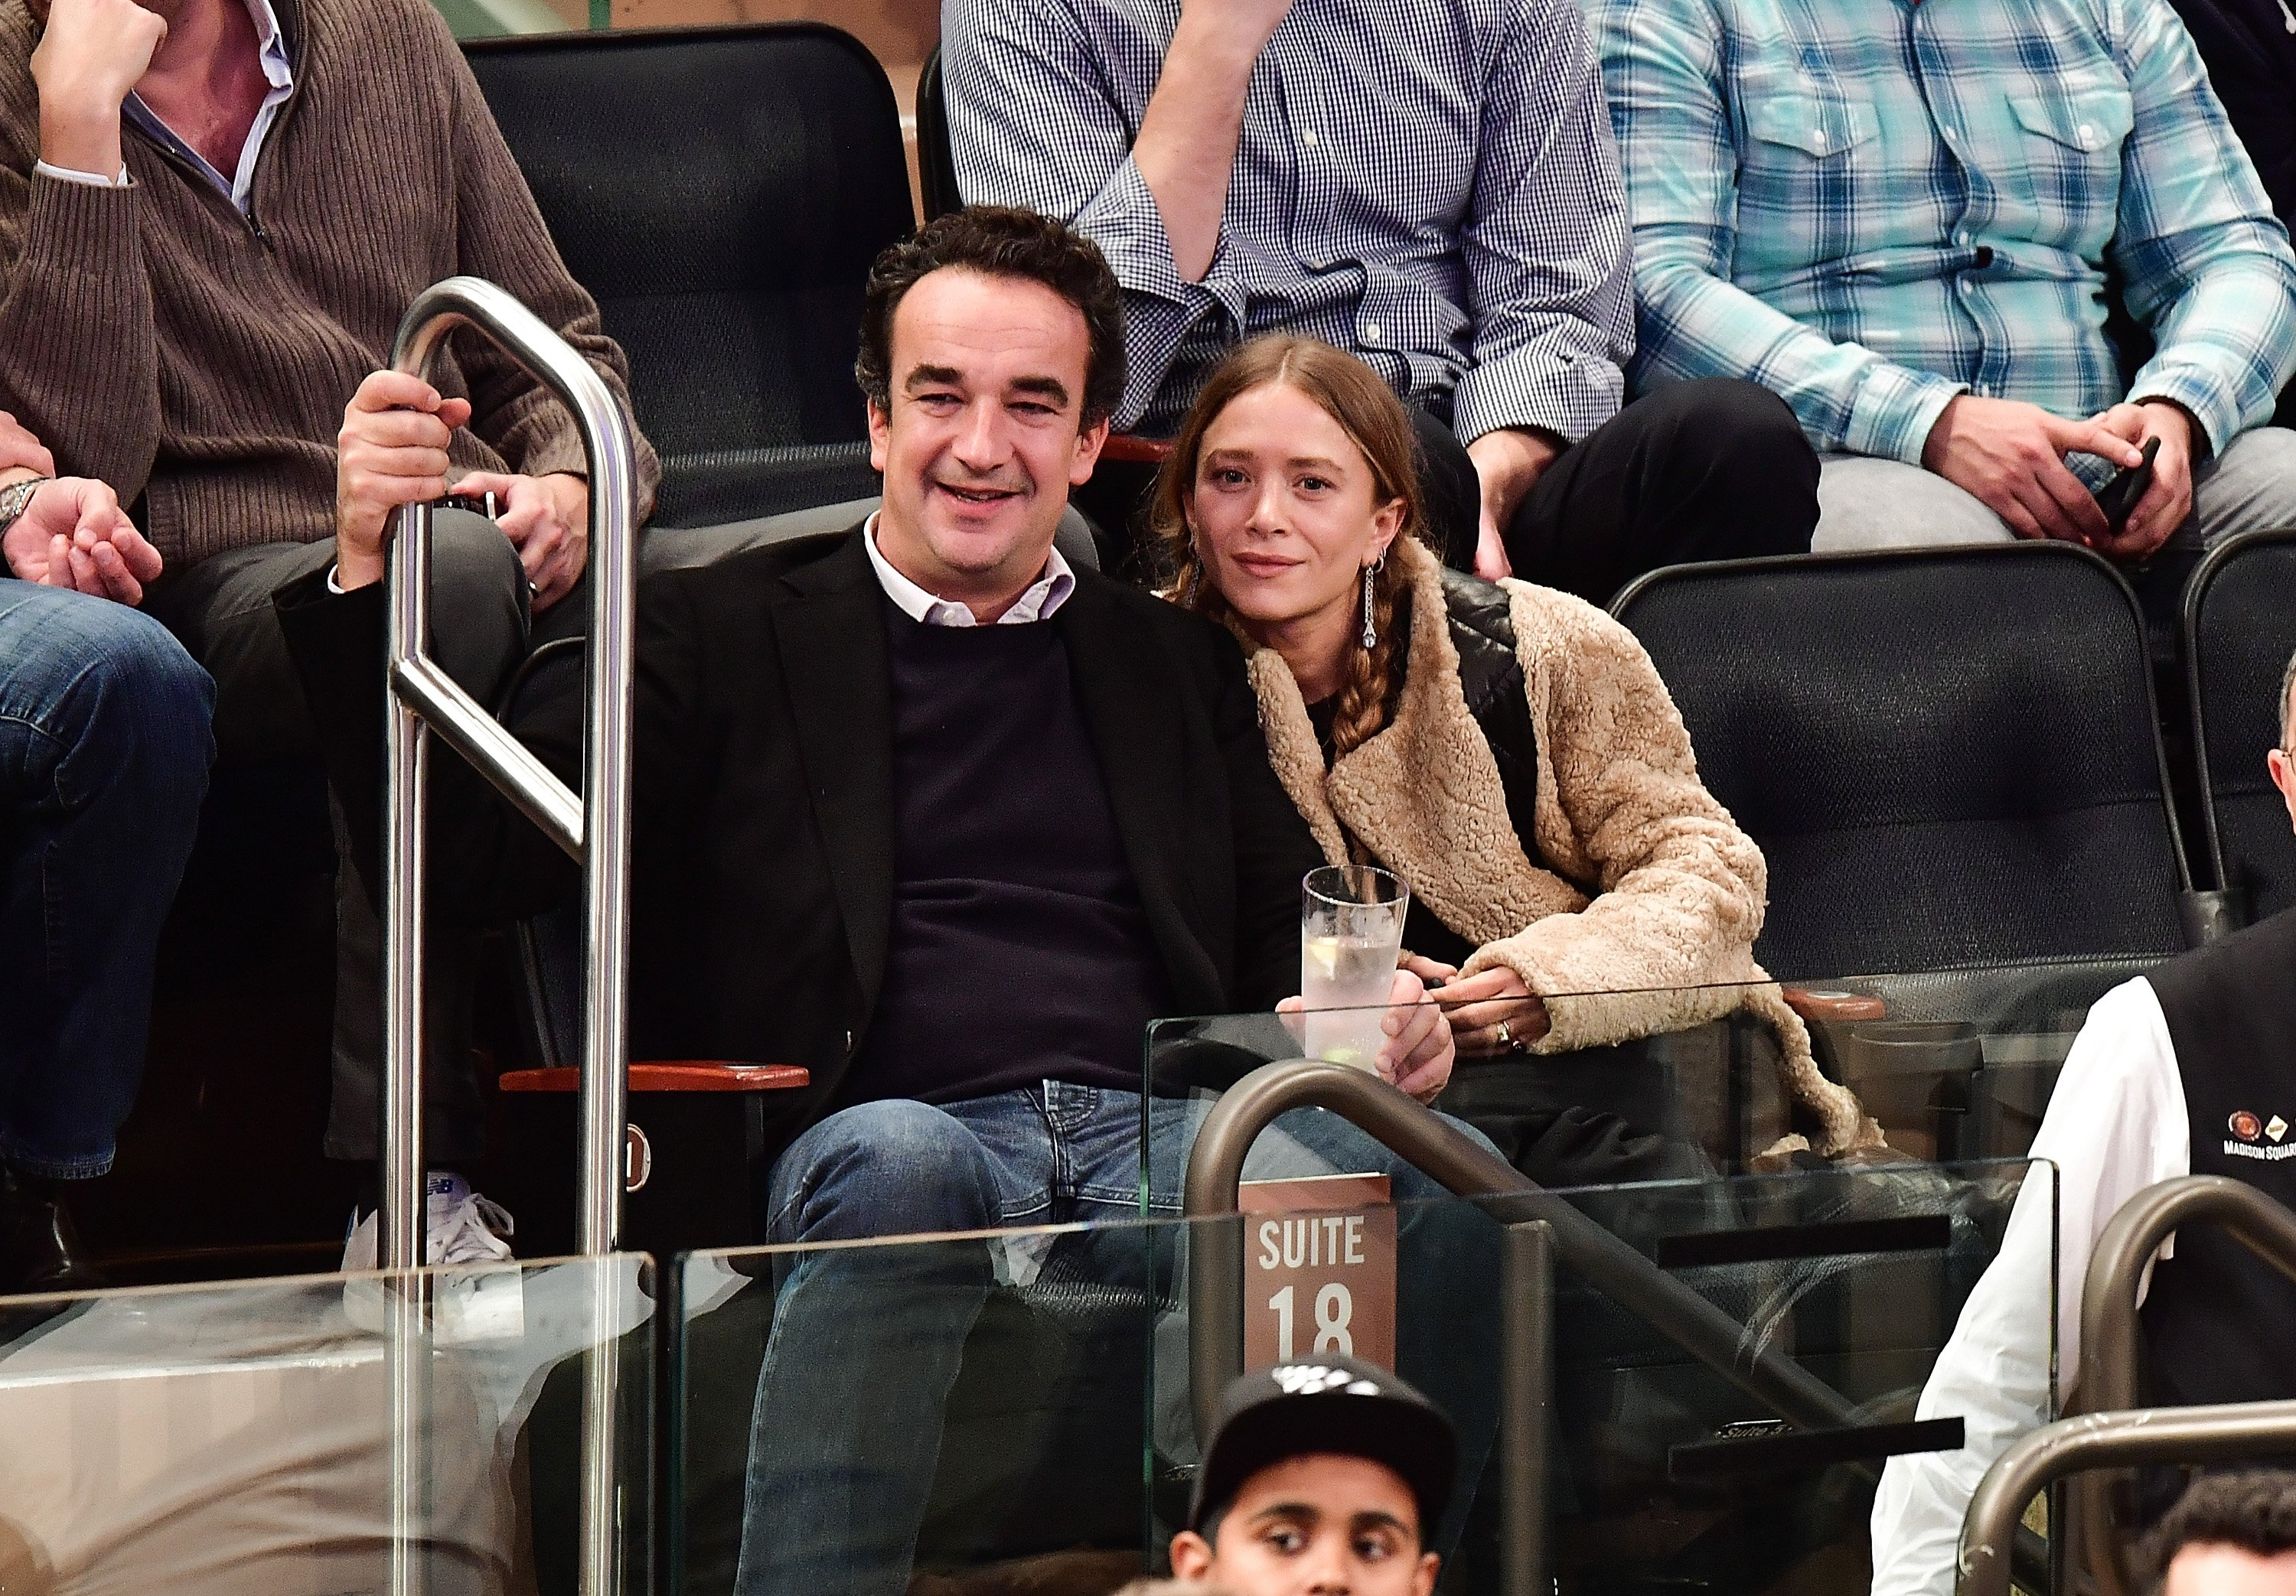 Olivier Sarkozy und Mary-Kate Olsen besuchen das Spiel New York Knicks gegen Brooklyn Nets im Madison Square Garden am 9. November 2016 in New York City | Quelle: Getty Images